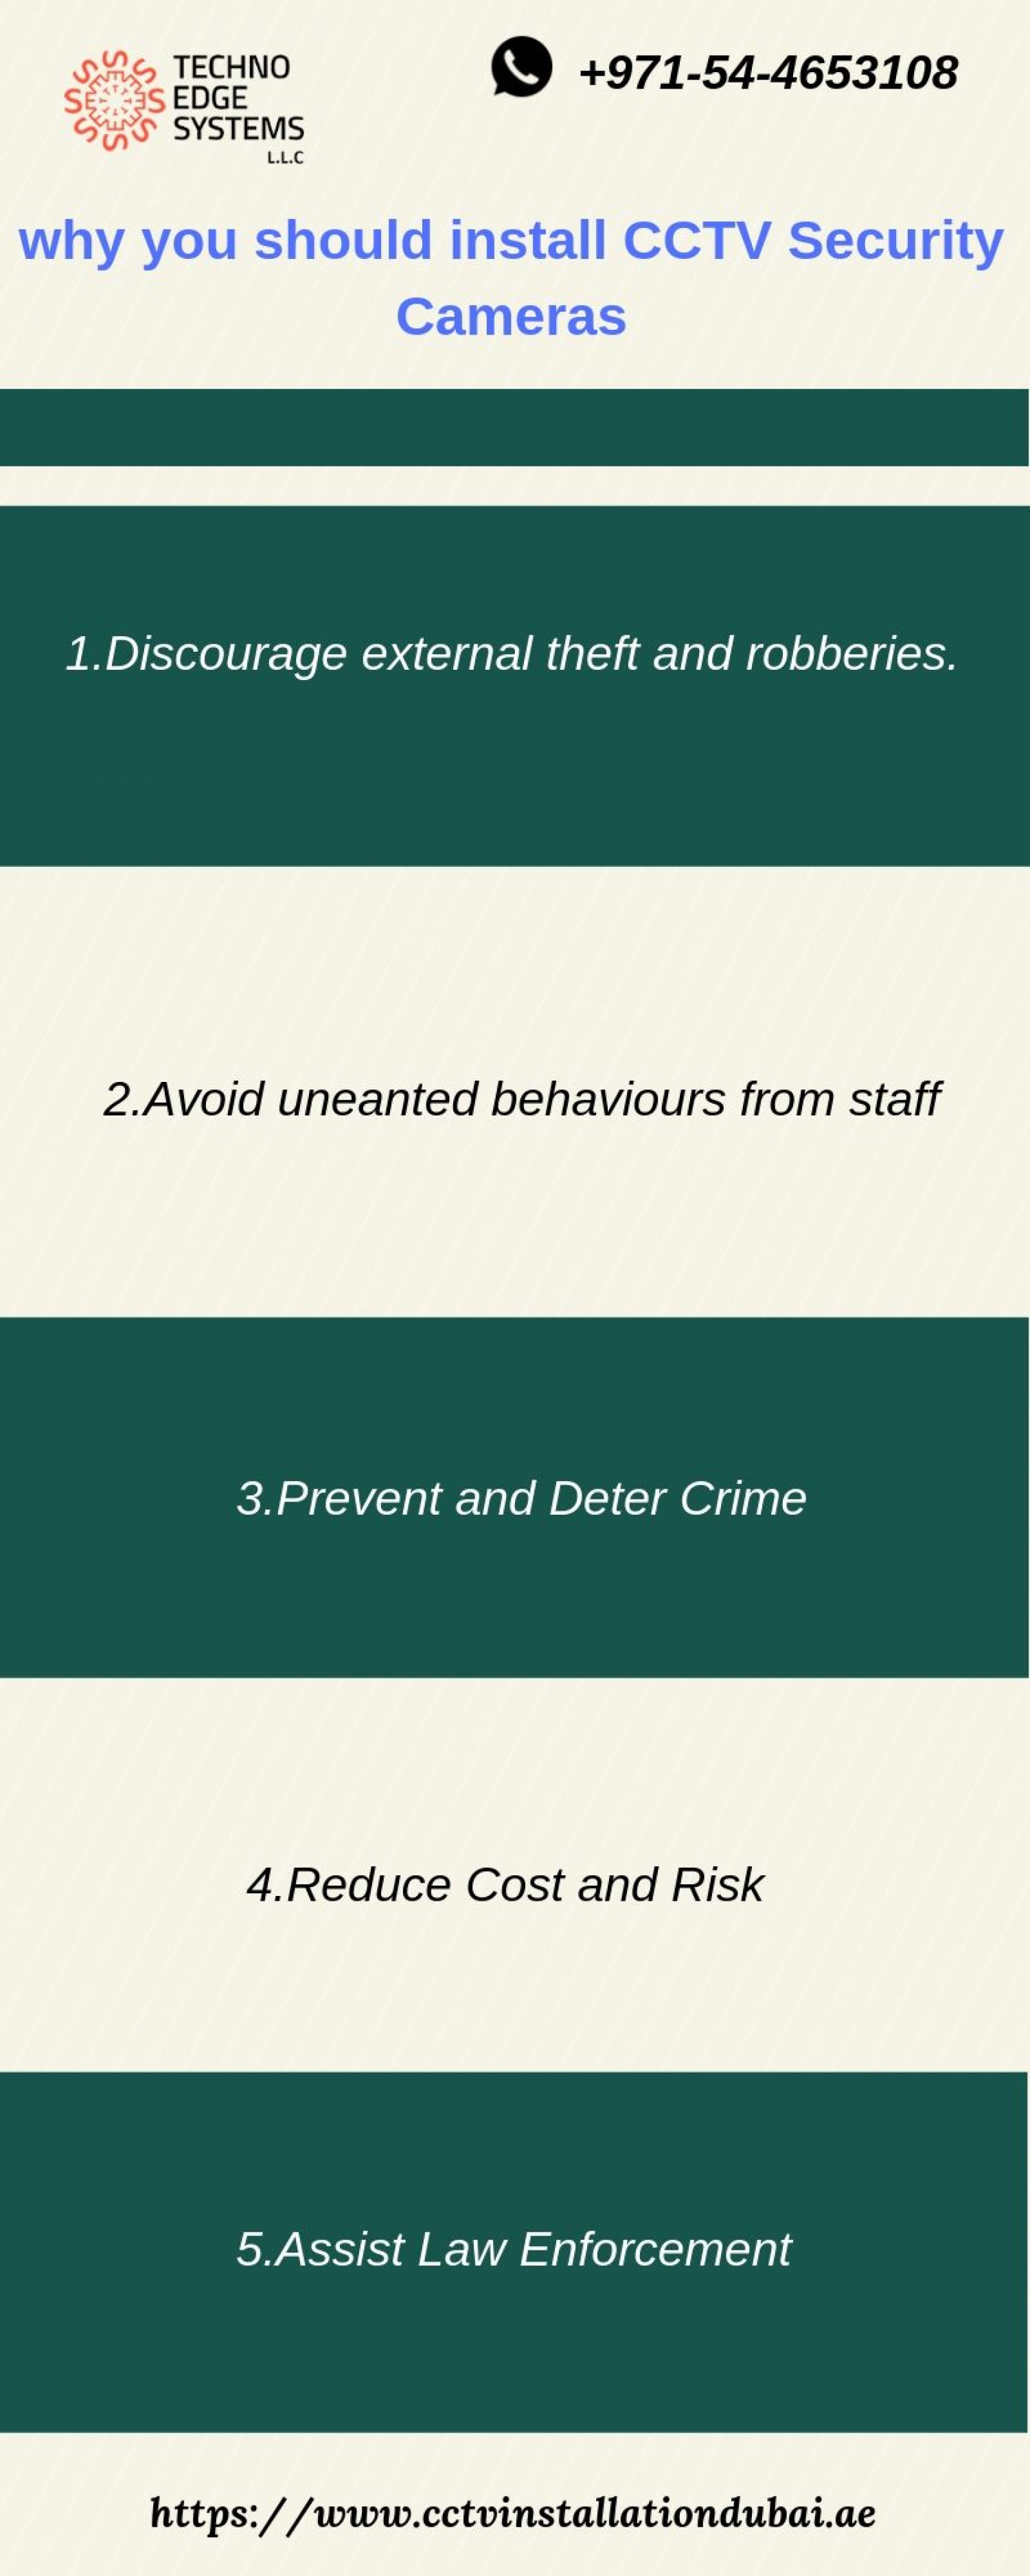 Why you should install CCTV Security Cameras? Infographic